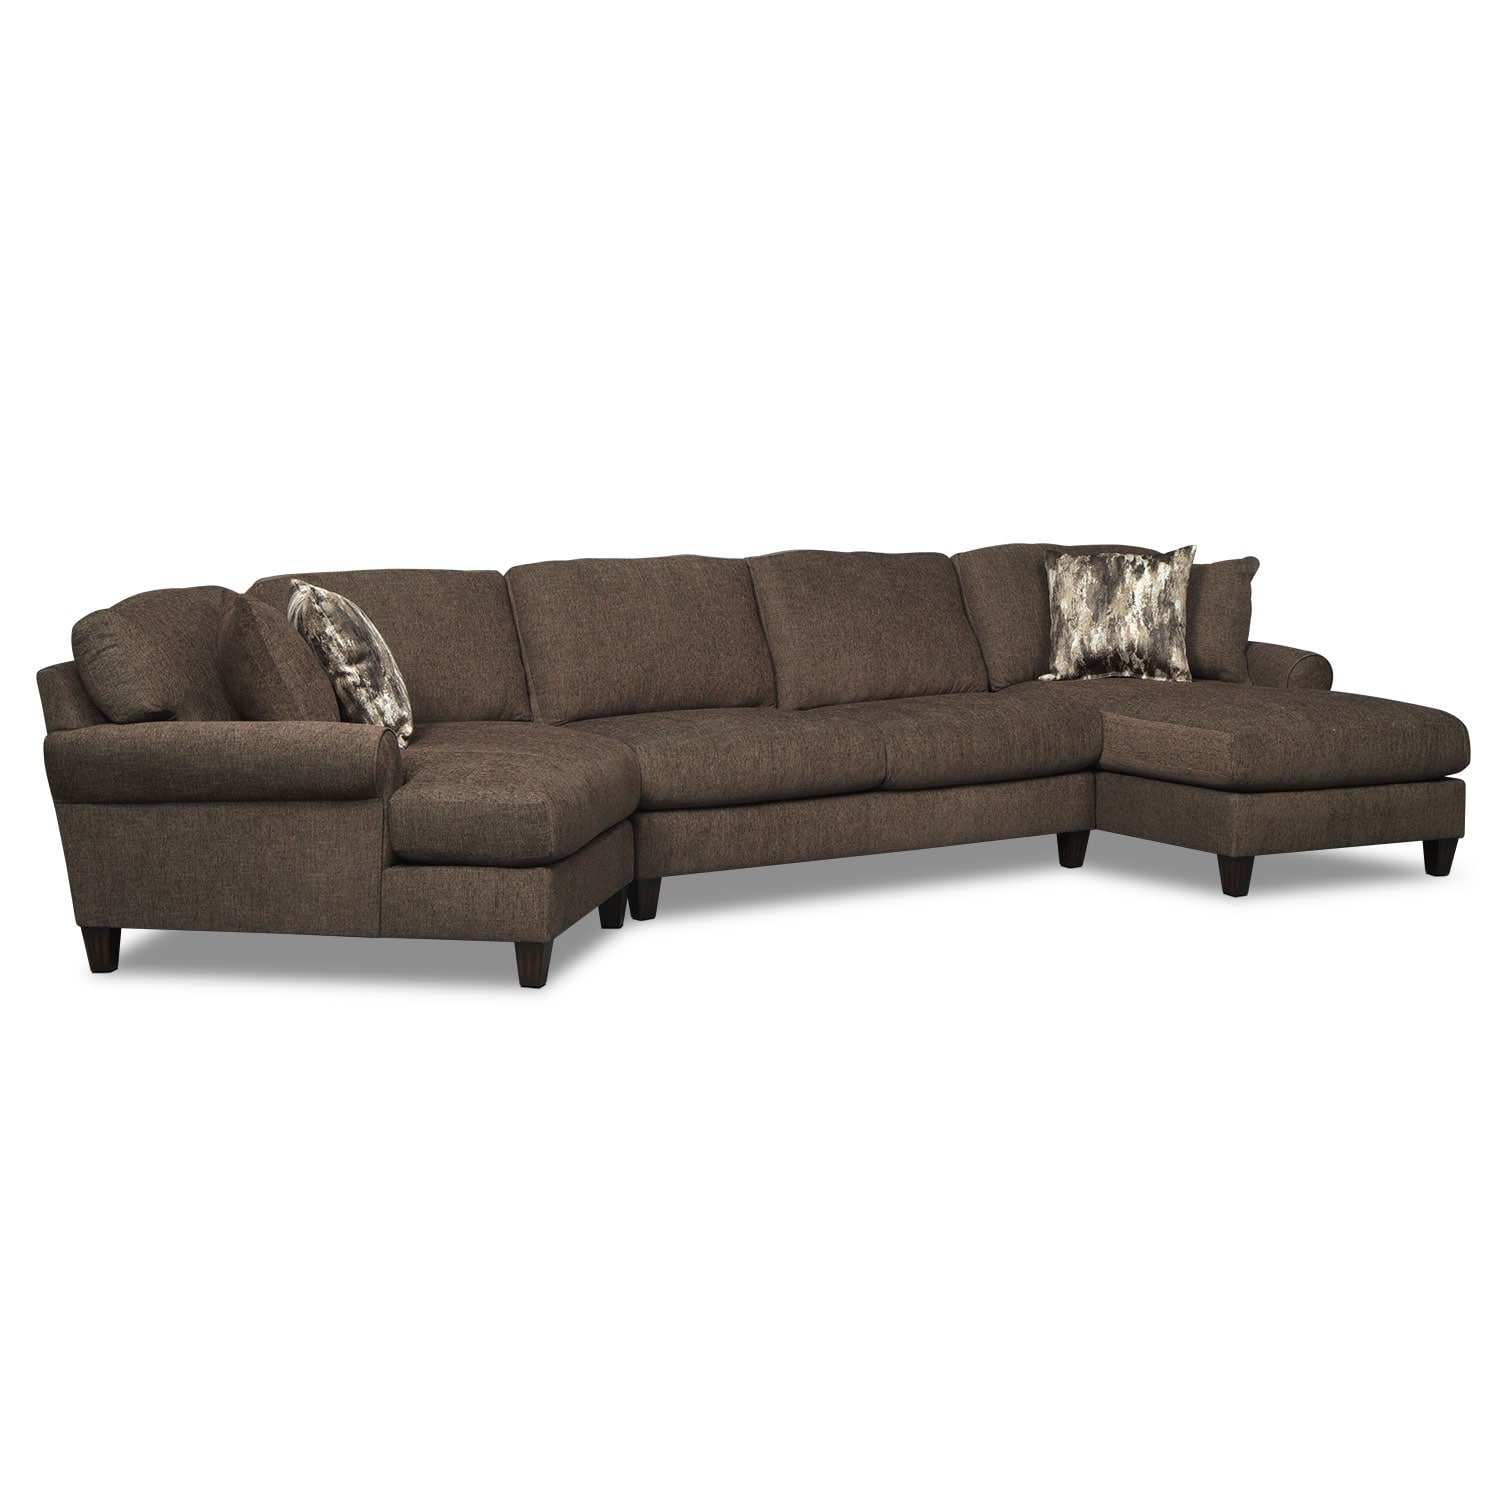 Living Room Furniture - Karma 3-Piece Sectional with Right-Facing Chaise and Left-Facing Cuddler - Smoke